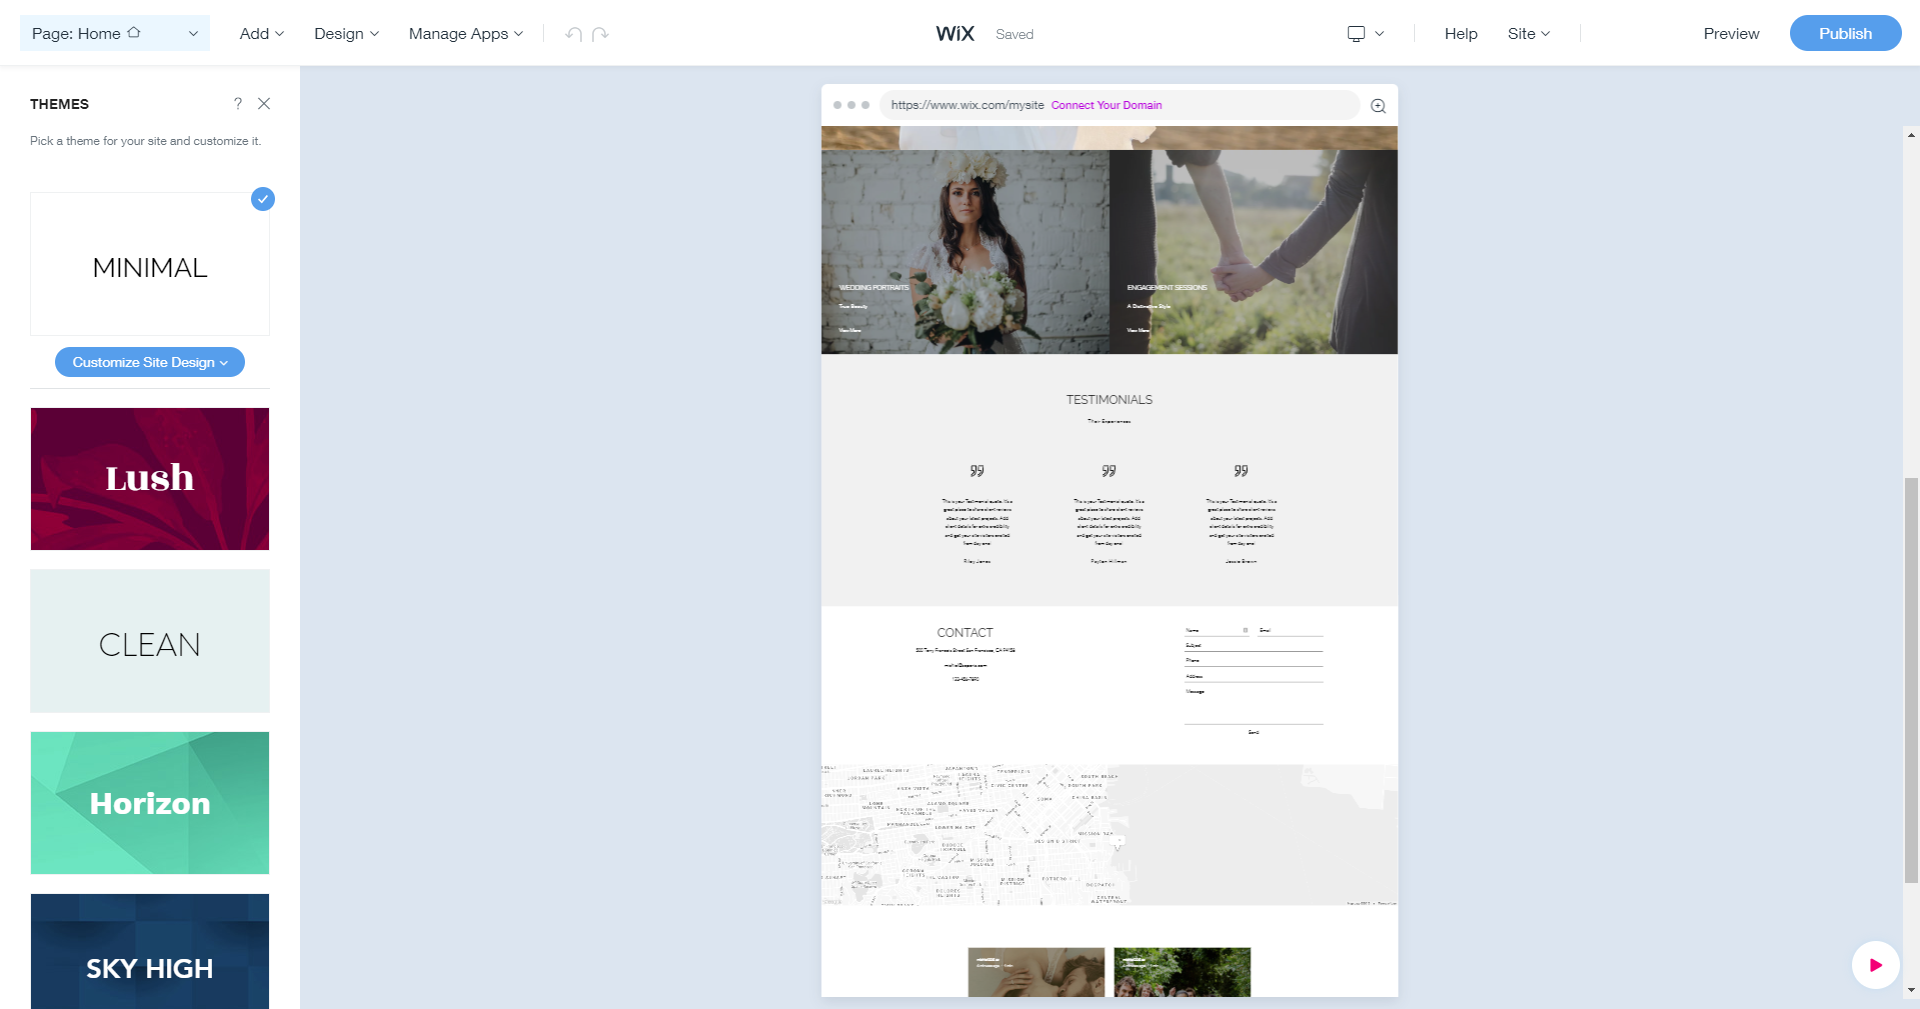 Wix ADI Theme Selection